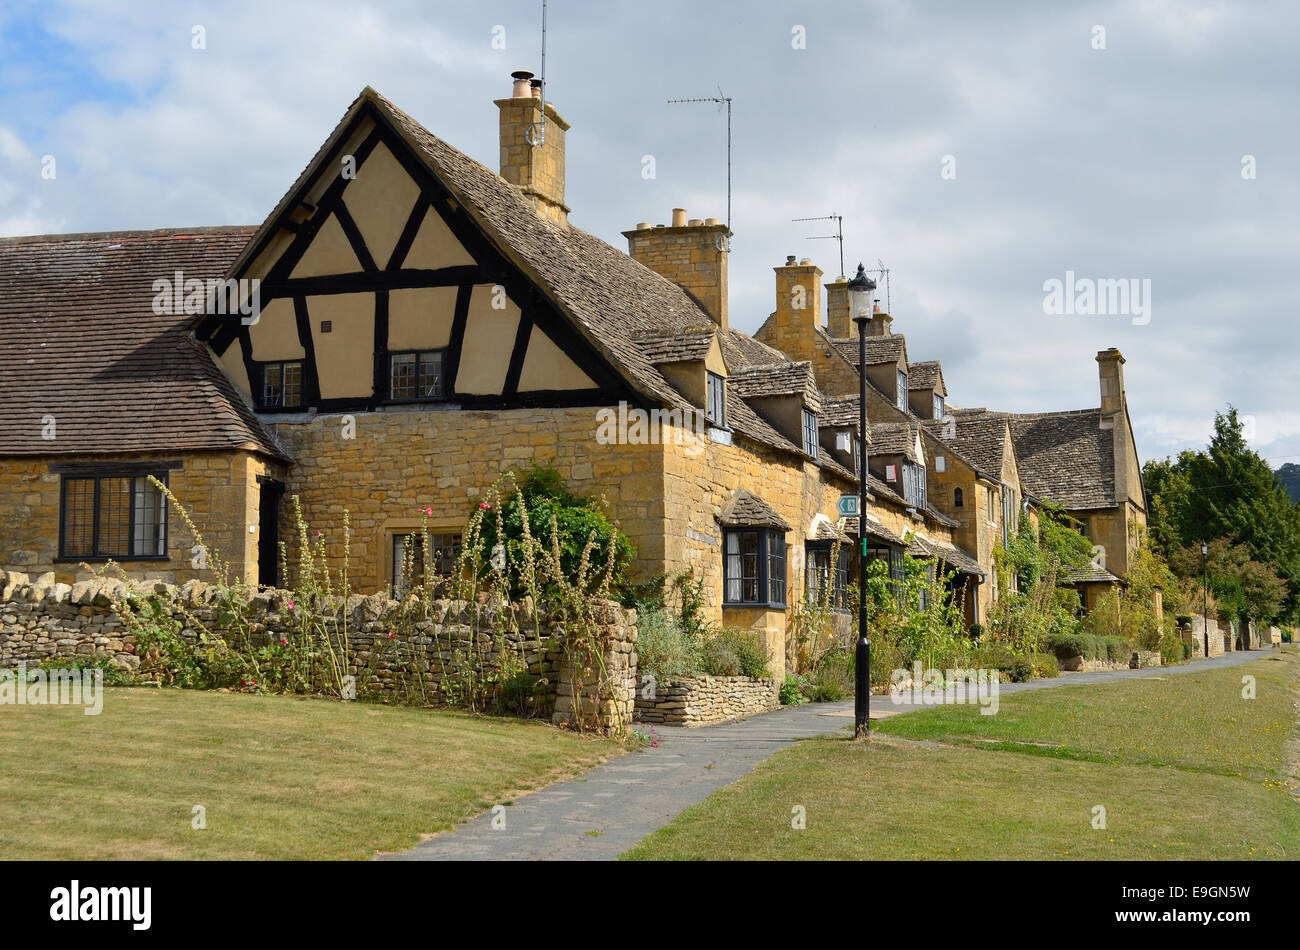 The Shakespeare's cottages, traditional half-timbered houses built out of honey-coloured stone in the town of Broadway, - Stock Image